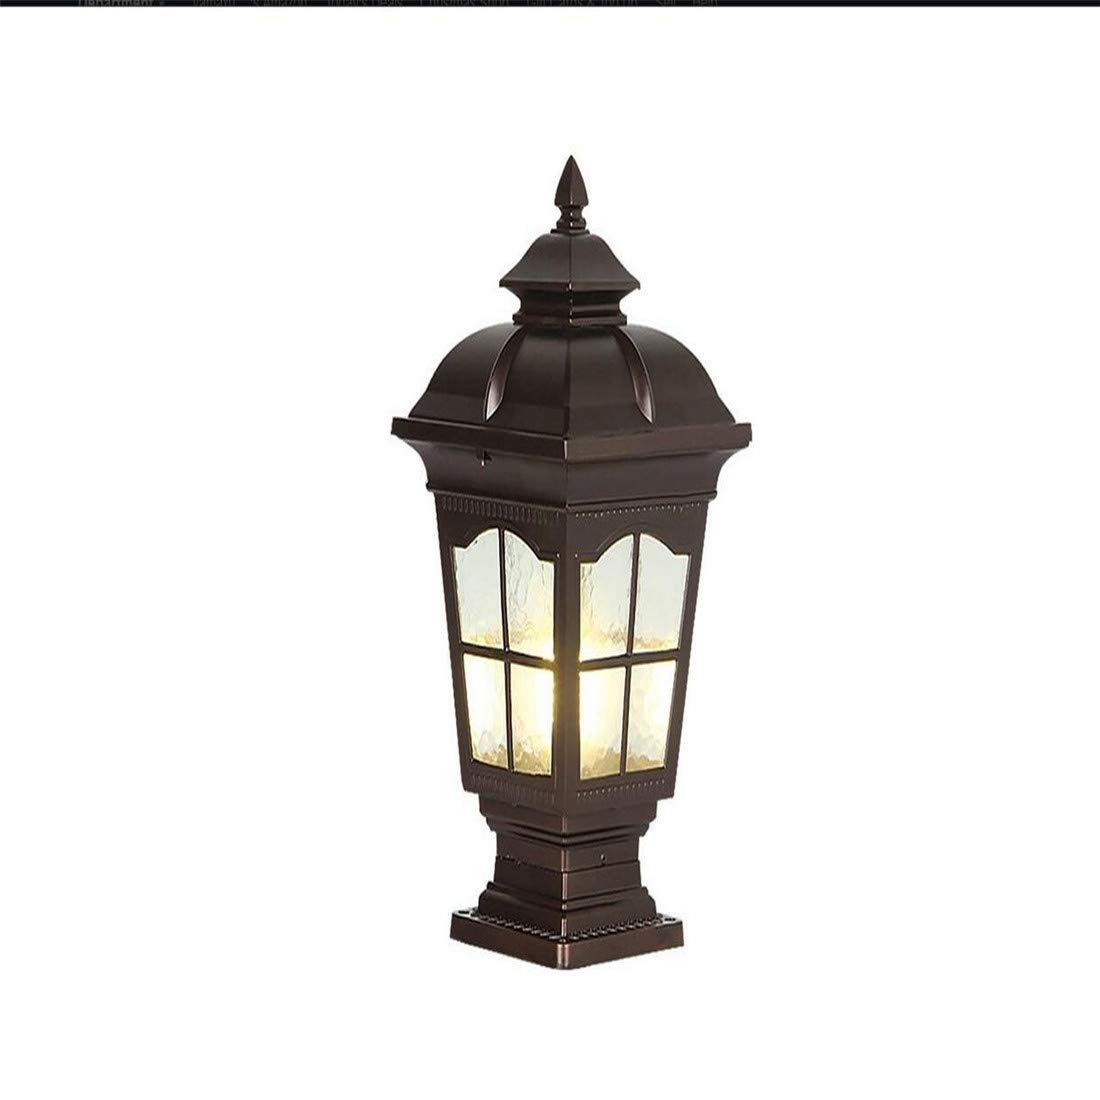 E27 Socket Landscape Lighting Fixture Garden Fence Prato Patio Fence Lampade Doorway impermeabile Illuminazione esterna (colore  Nero)